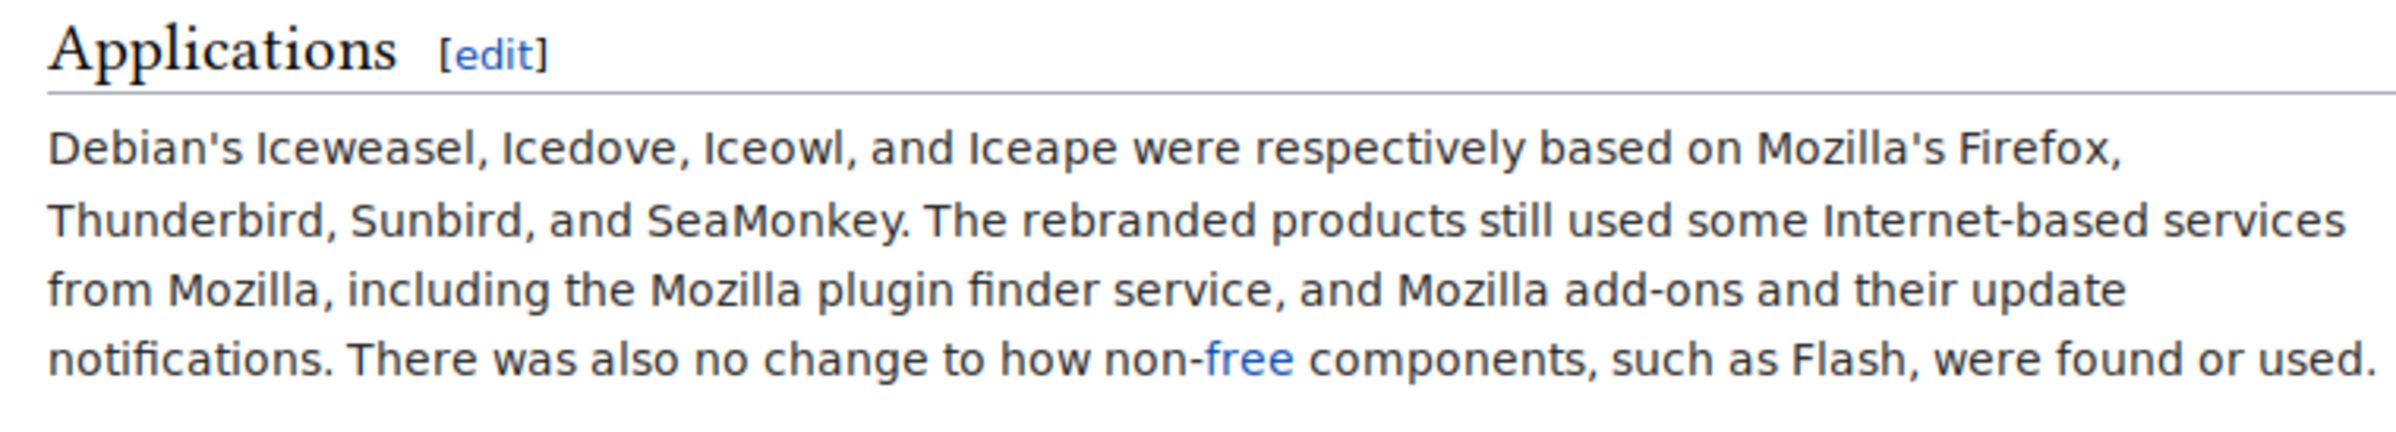 "Before showing URLs - example showing Wikipedia entry ""Mozilla software rebranded by Debian"""